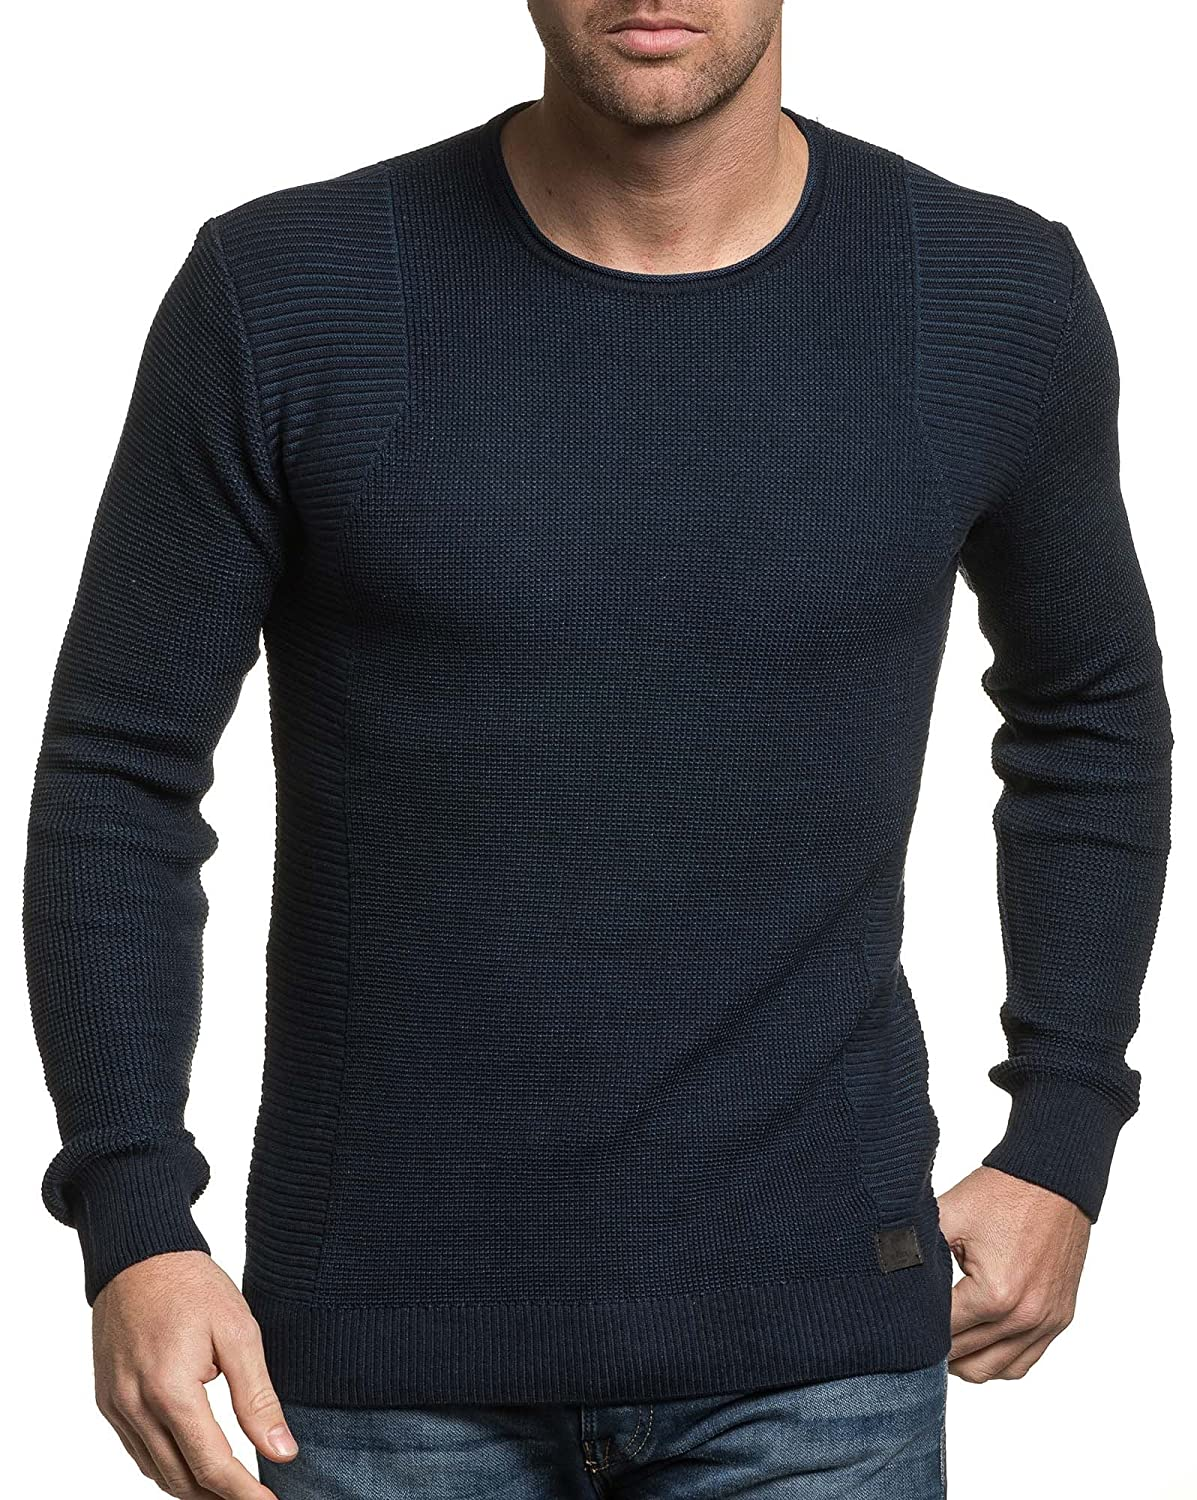 BLZ jeans - tight blue sweater man navy